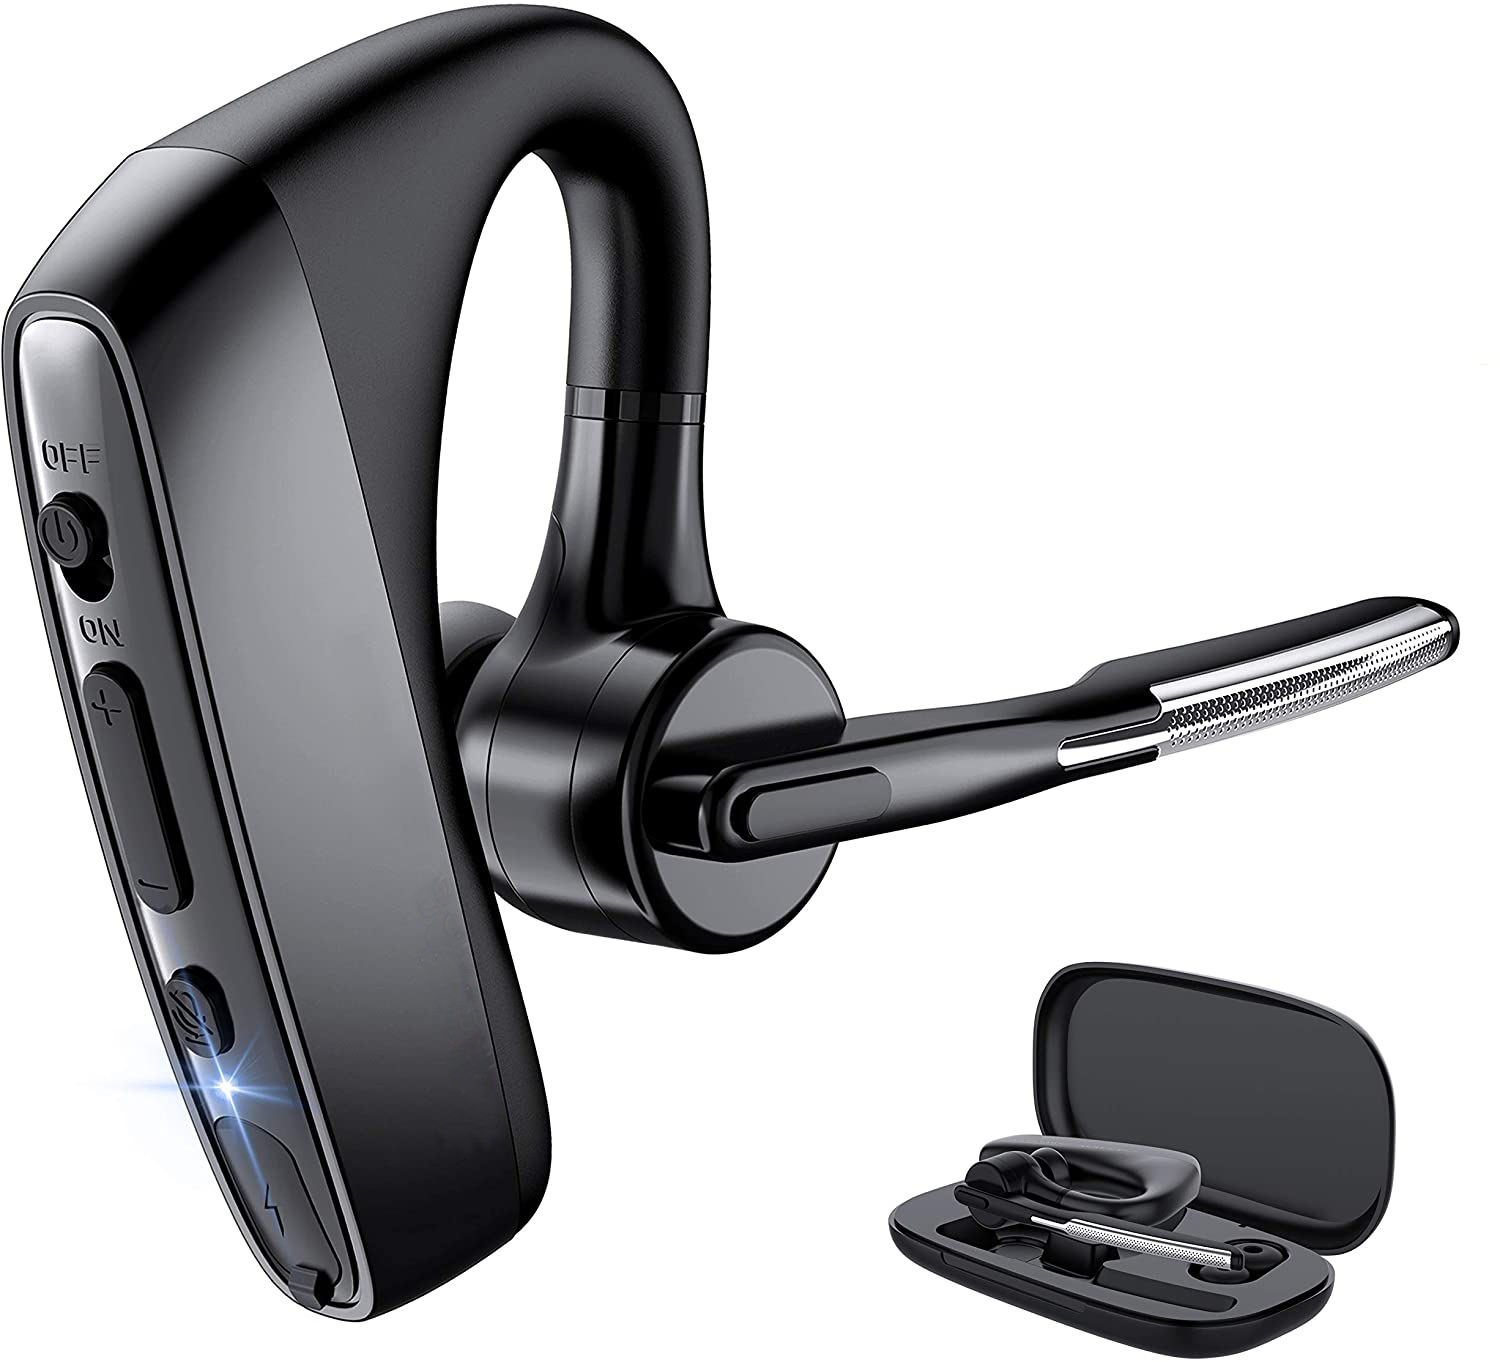 K18 Bluetooth V5.1 Dual Mic Noise Cancelling Hands-Free Wireless Bluetooth Earpiece headset for Business/Office/Driving